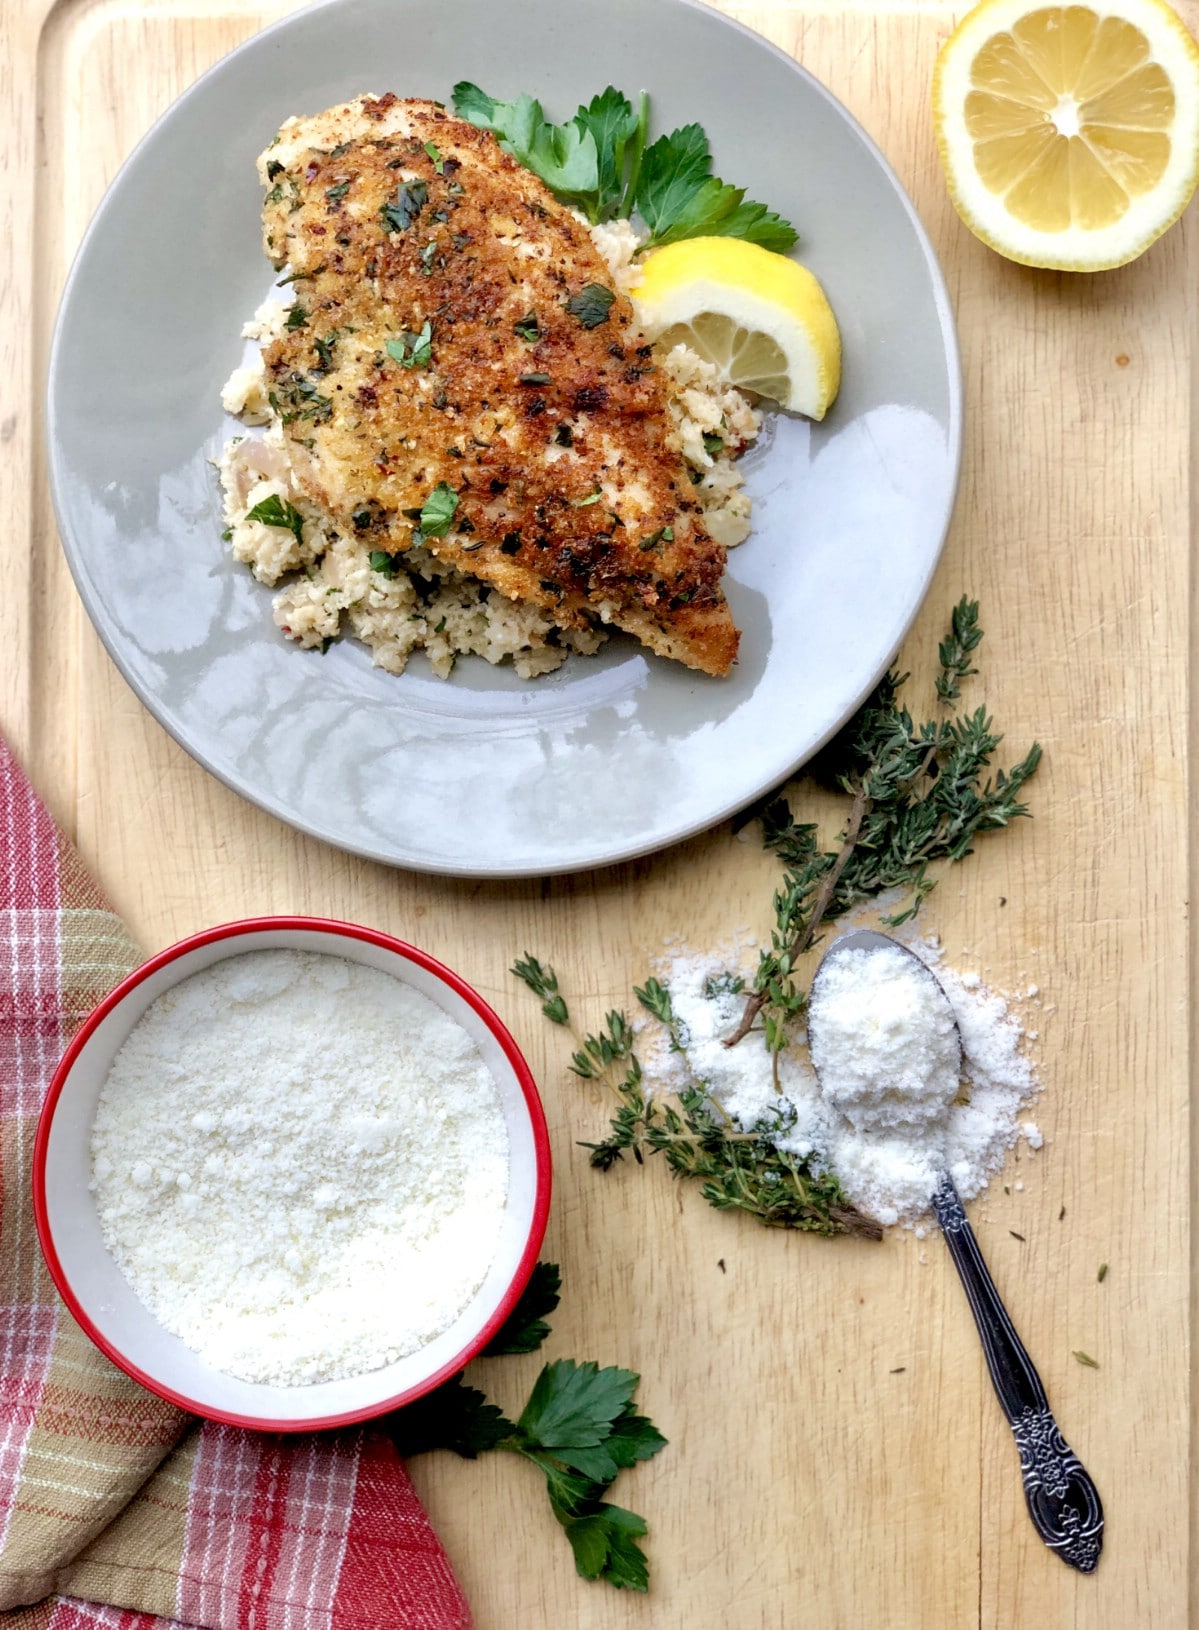 Garlic herb chicken on white plate